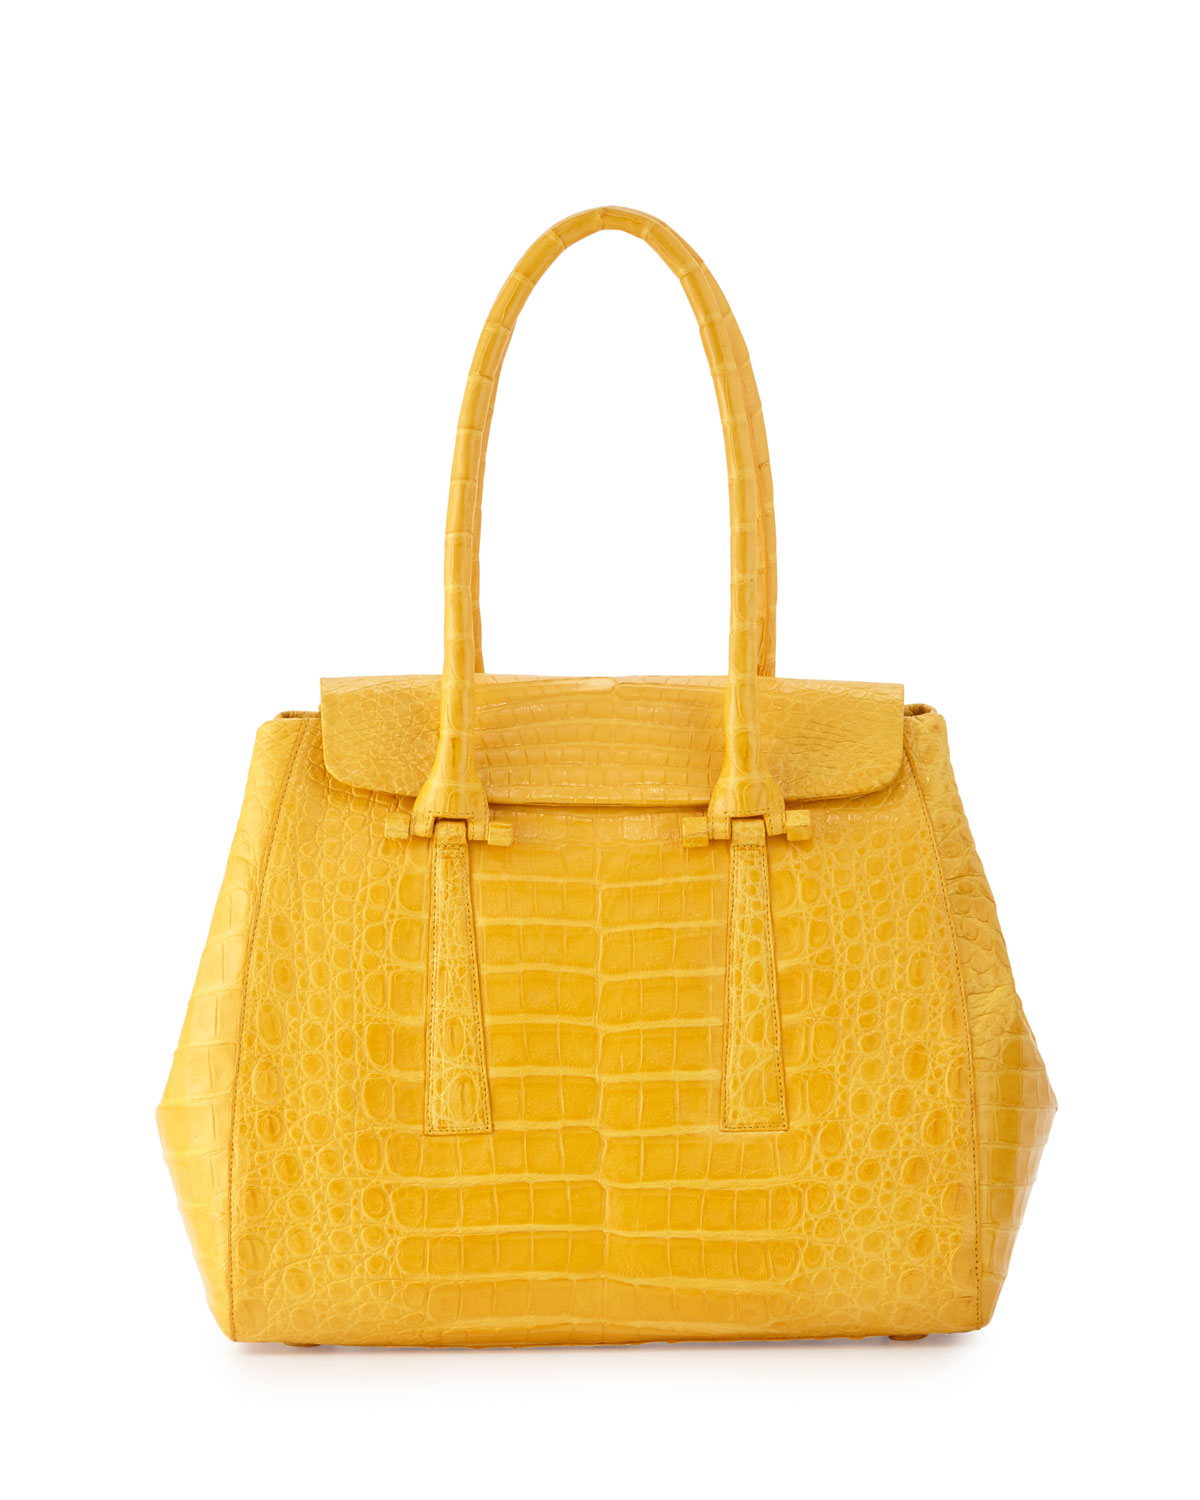 Nancy Gonzalez Crocodile Small Flap Tote Bag, Yellow Matte, Size: S